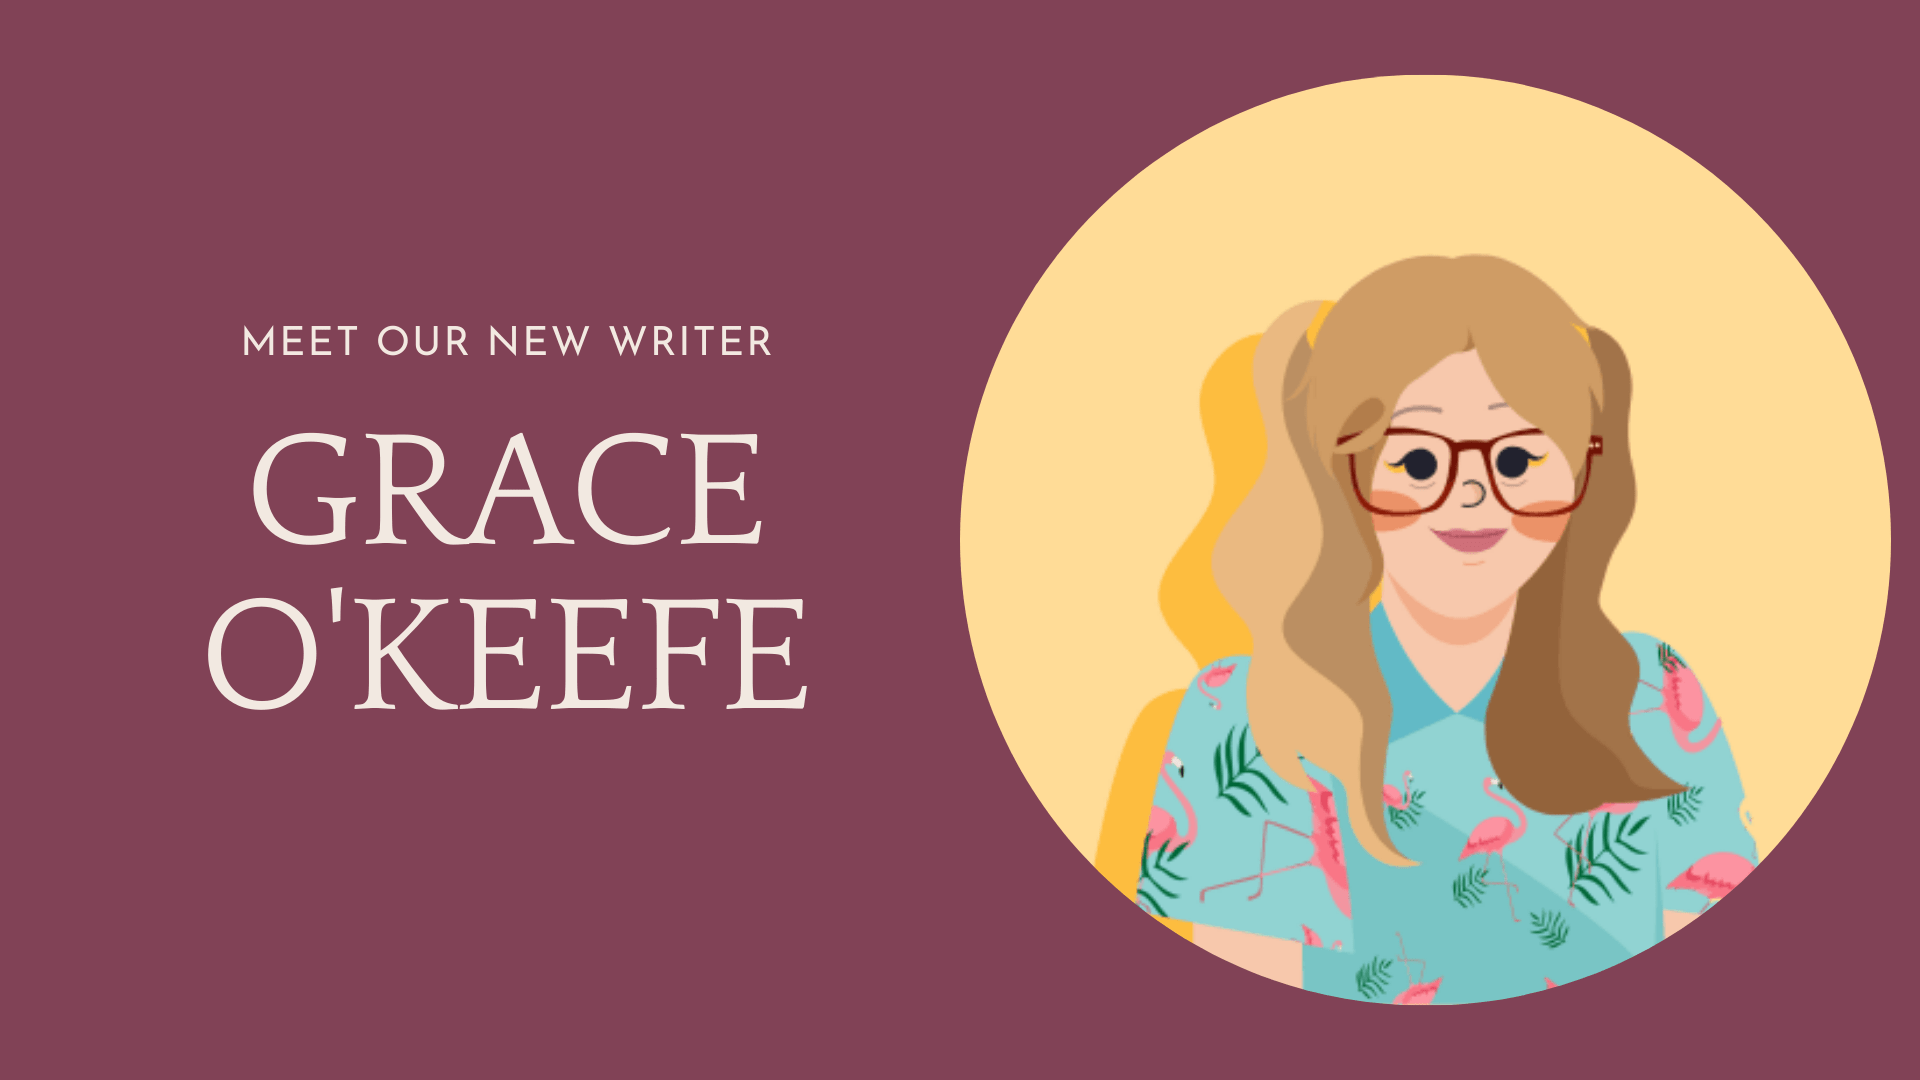 Meet Grace O'Keefe, our newest writer in London!